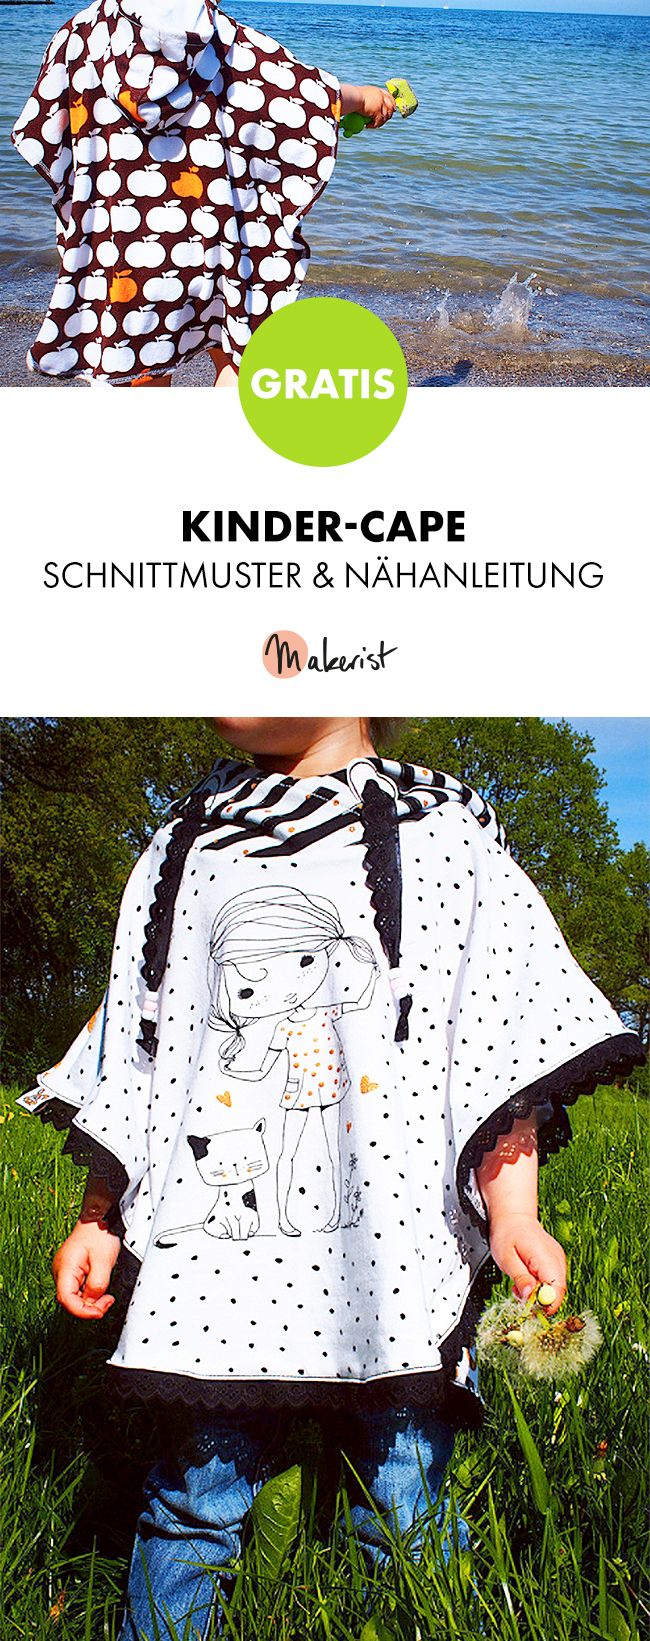 347 best nähen für Kinder images on Pinterest | Autos, Camper and ...